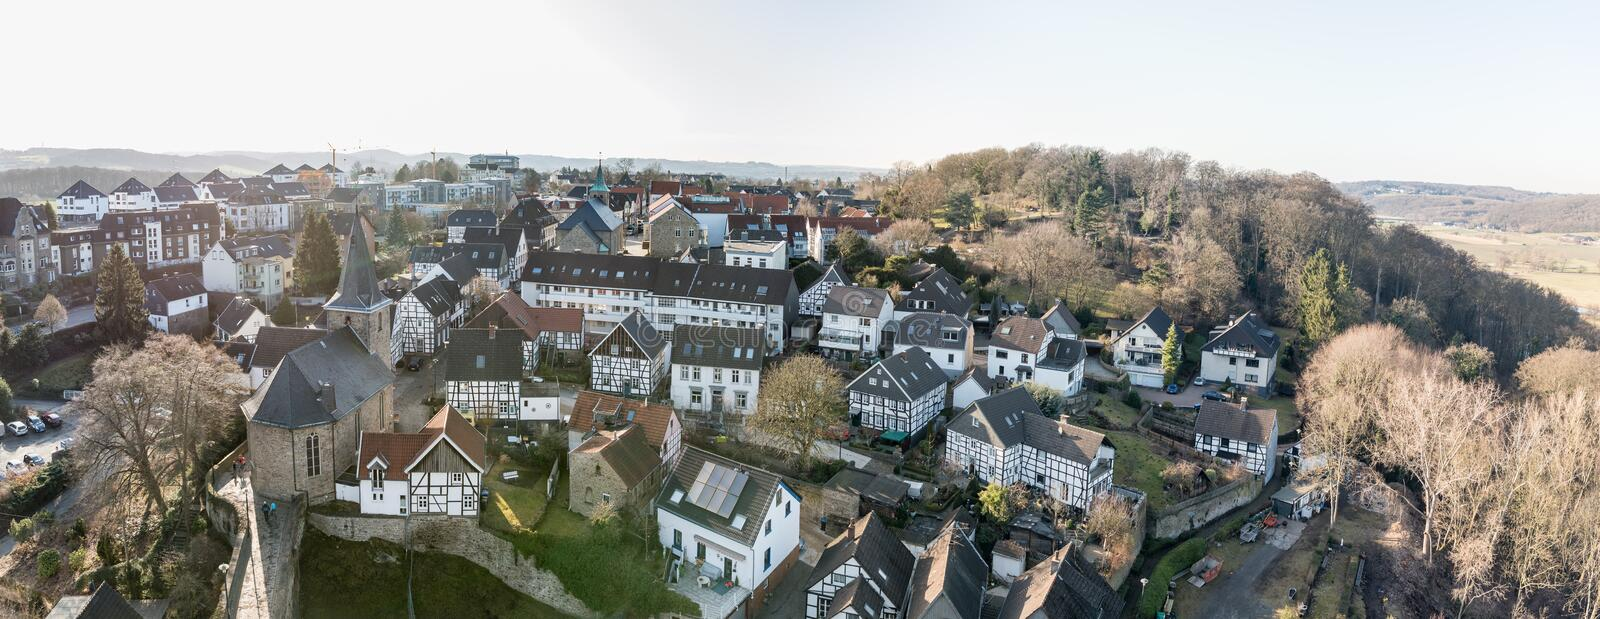 Blankenstein, GERMANY - FEBRUARY 15, 2017: From top of the tower of Burg Blankenstein one has a spectacular view over the historic. Town royalty free stock image